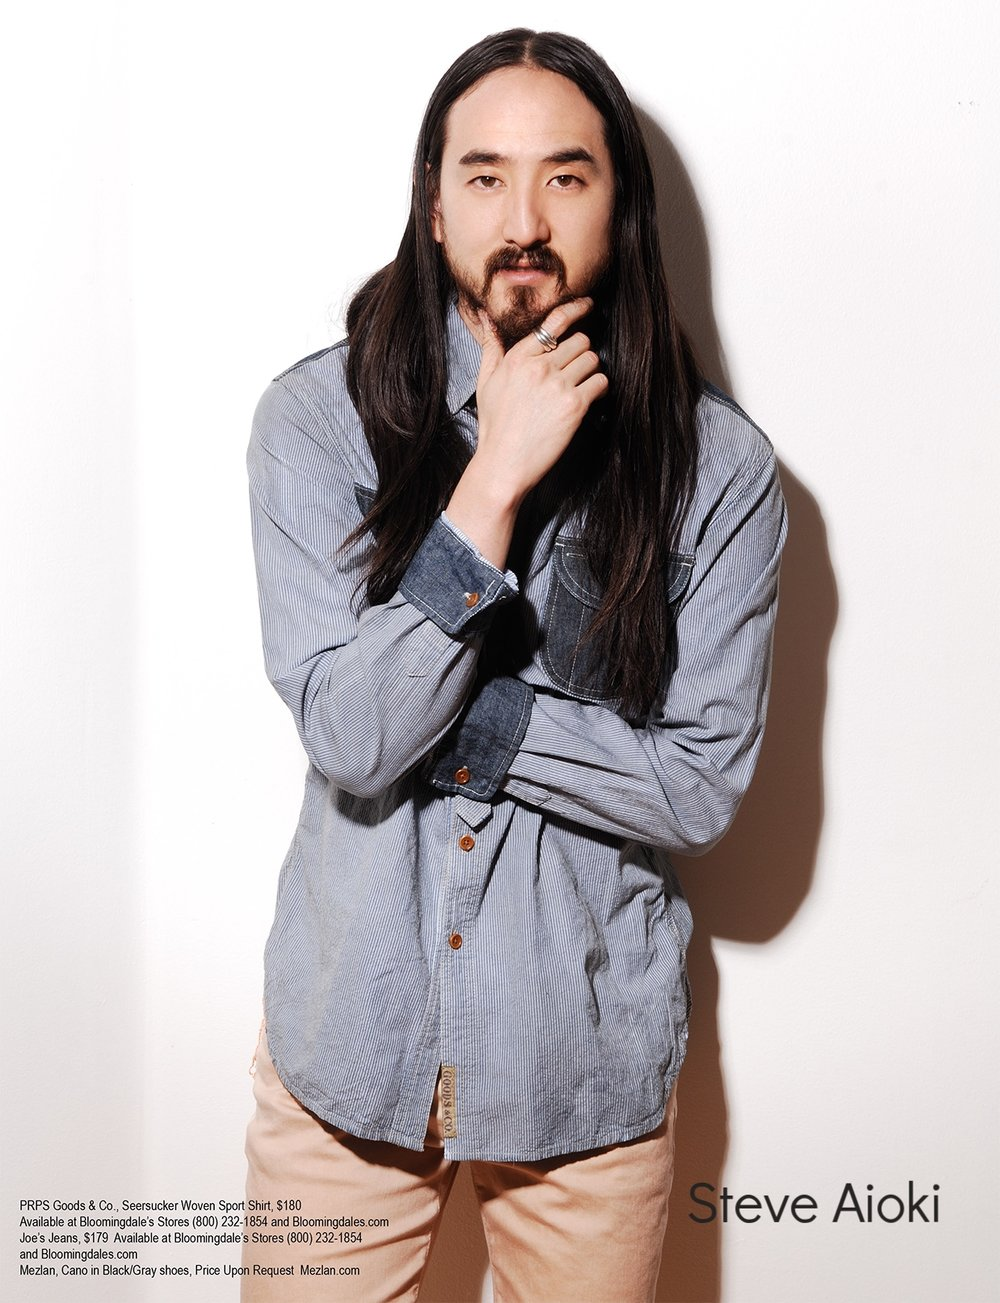 Steve Aoki Regard Magazine June 2012-145.jpg